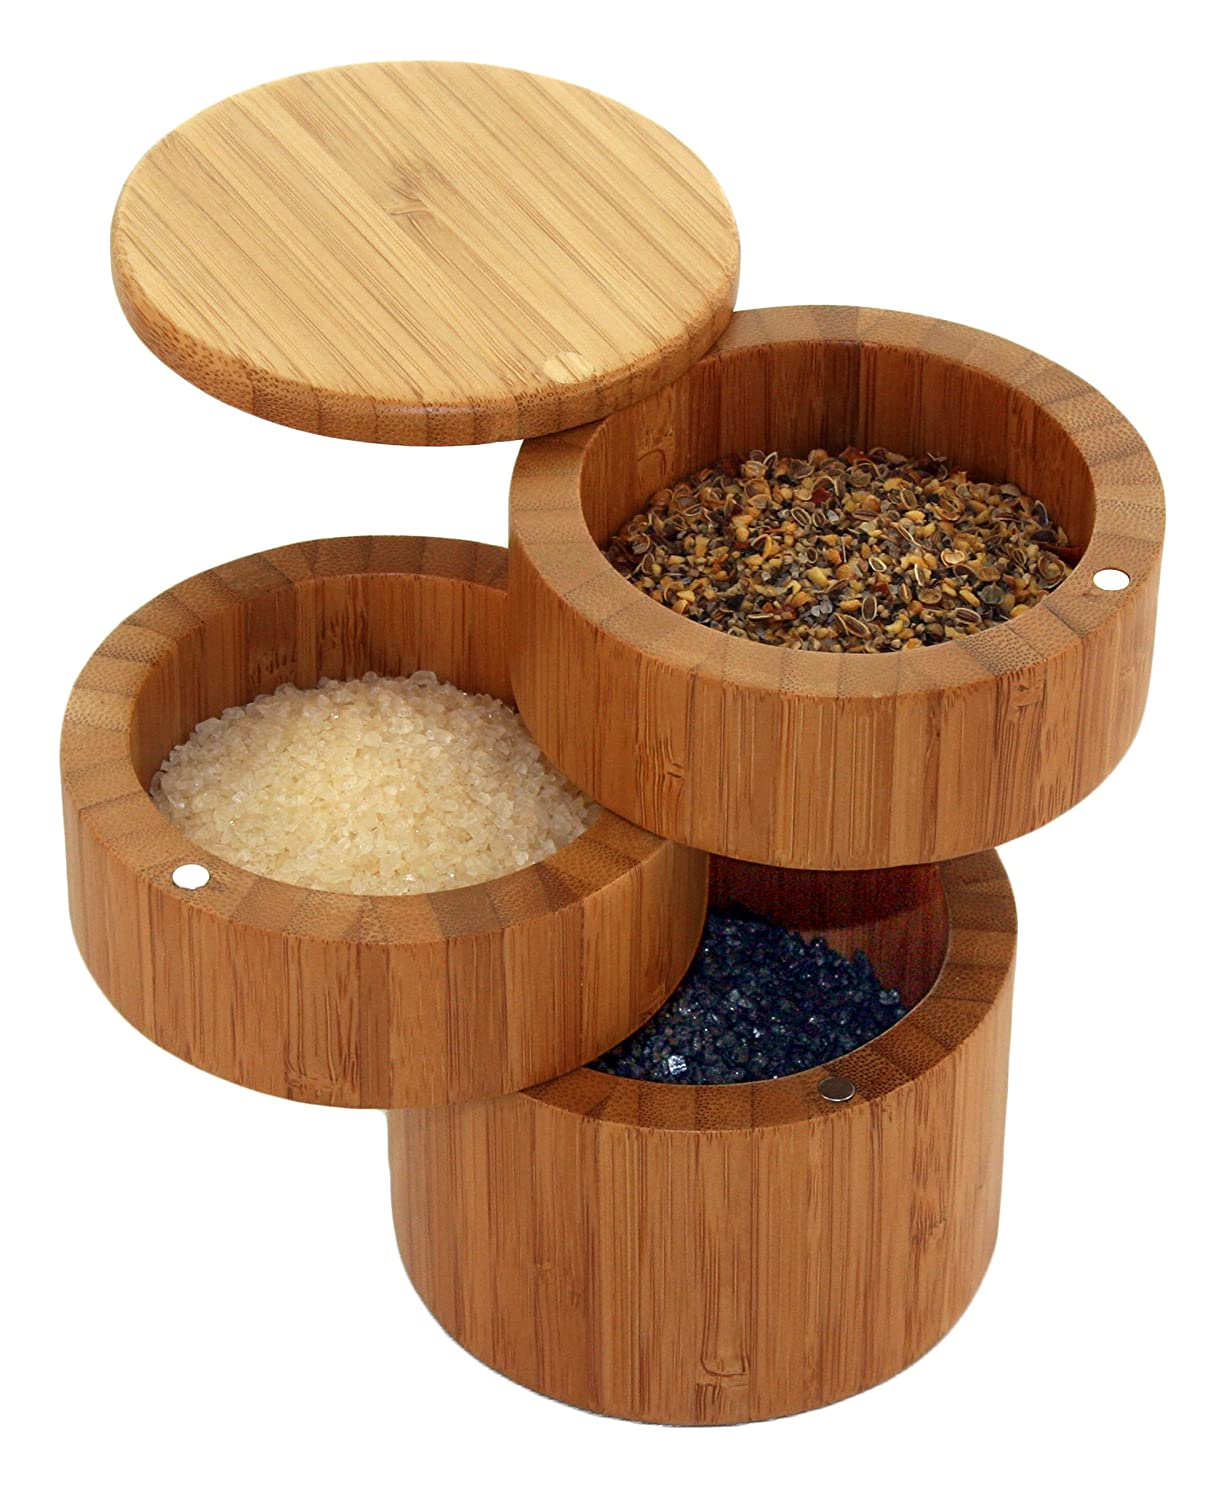 Totally Bamboo Triple Salt Box, 100% Bamboo Container with Magnetic Lid For Secure Strong Storage, This Wooden Box has Three Compartments for Salt, Spices, Herbs, Seasoning & MORE!